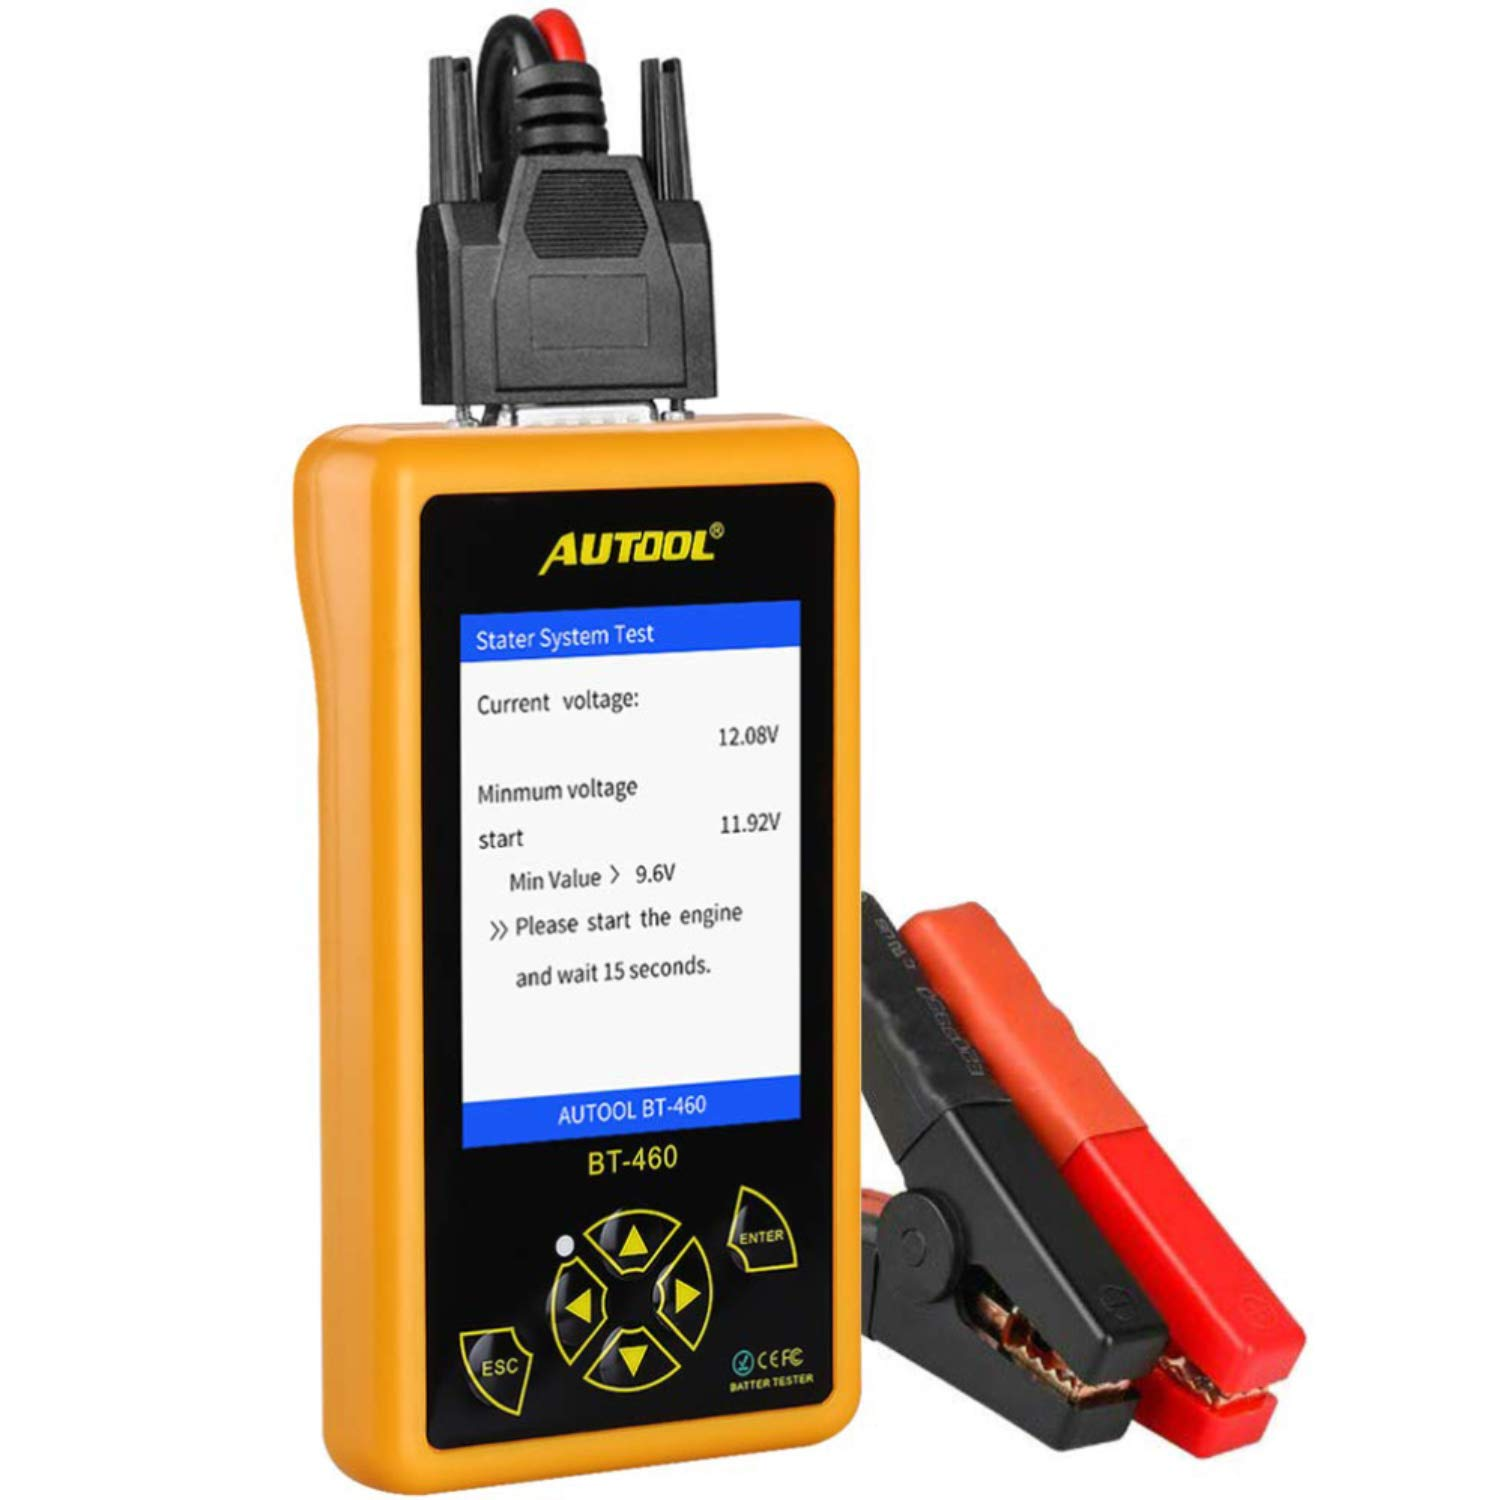 AUTOOL BT460 Automotive Battery Tester Support 12V & 24V Cars, Motorcycle, SUVs, Minivans, Heavy Duty Trucks & Boats with TFT Colorful Display